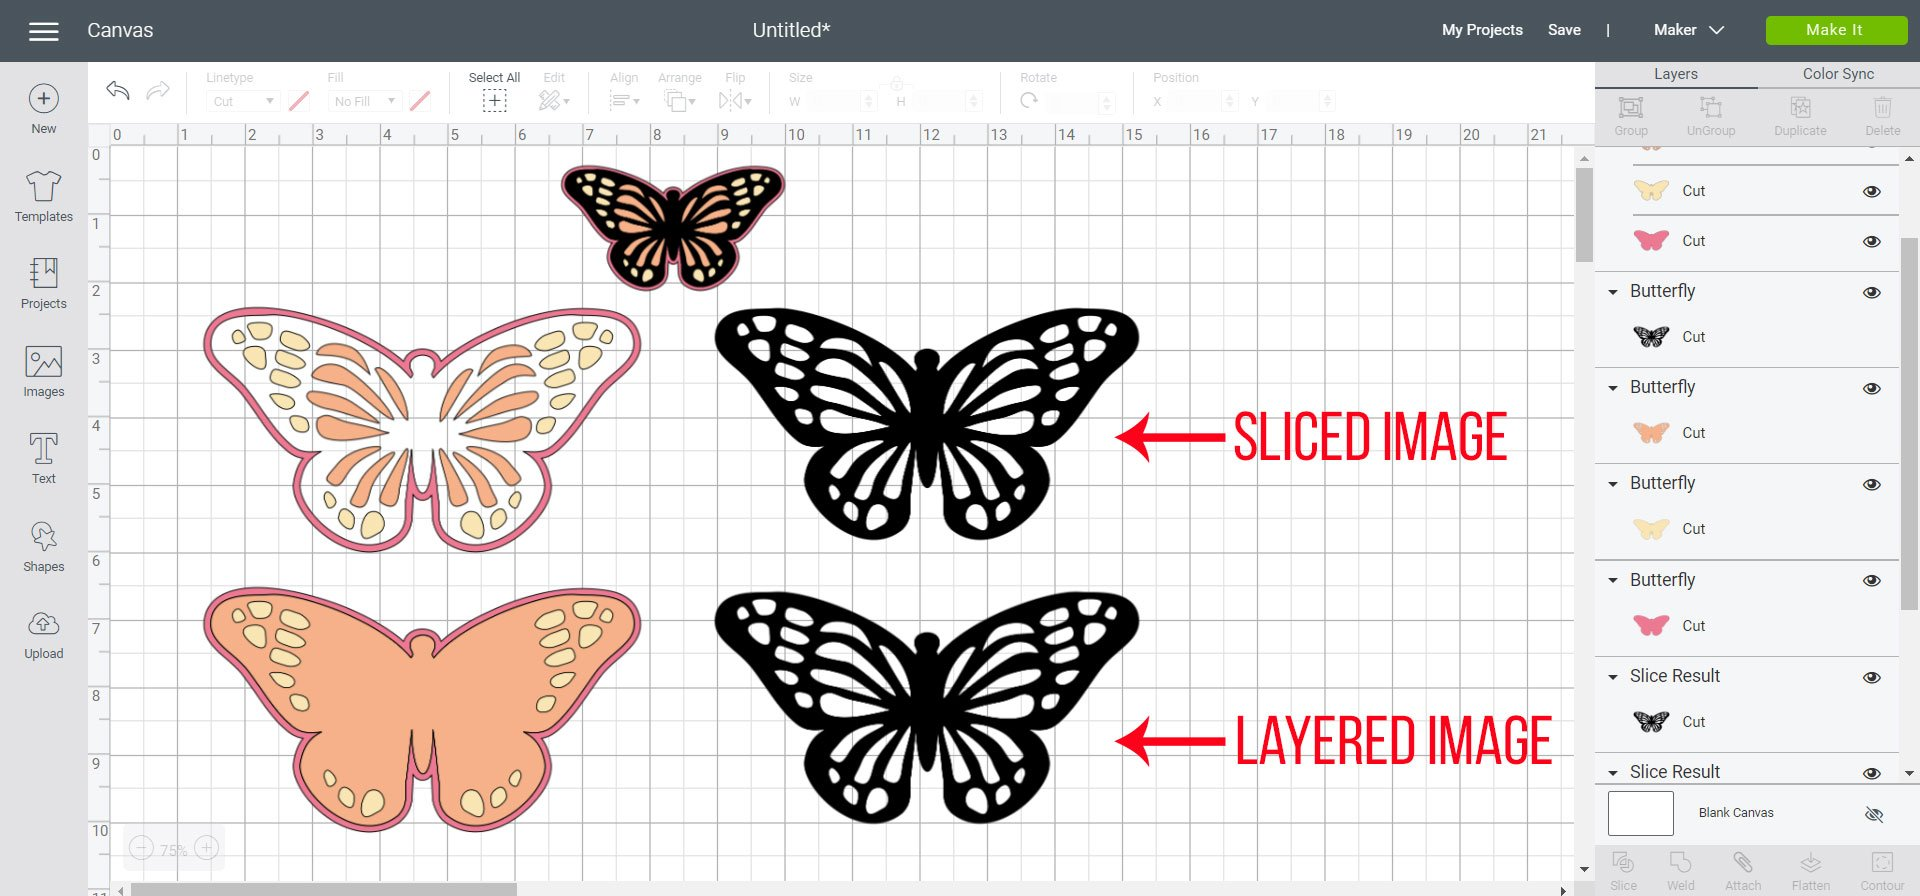 sliced vs layered image